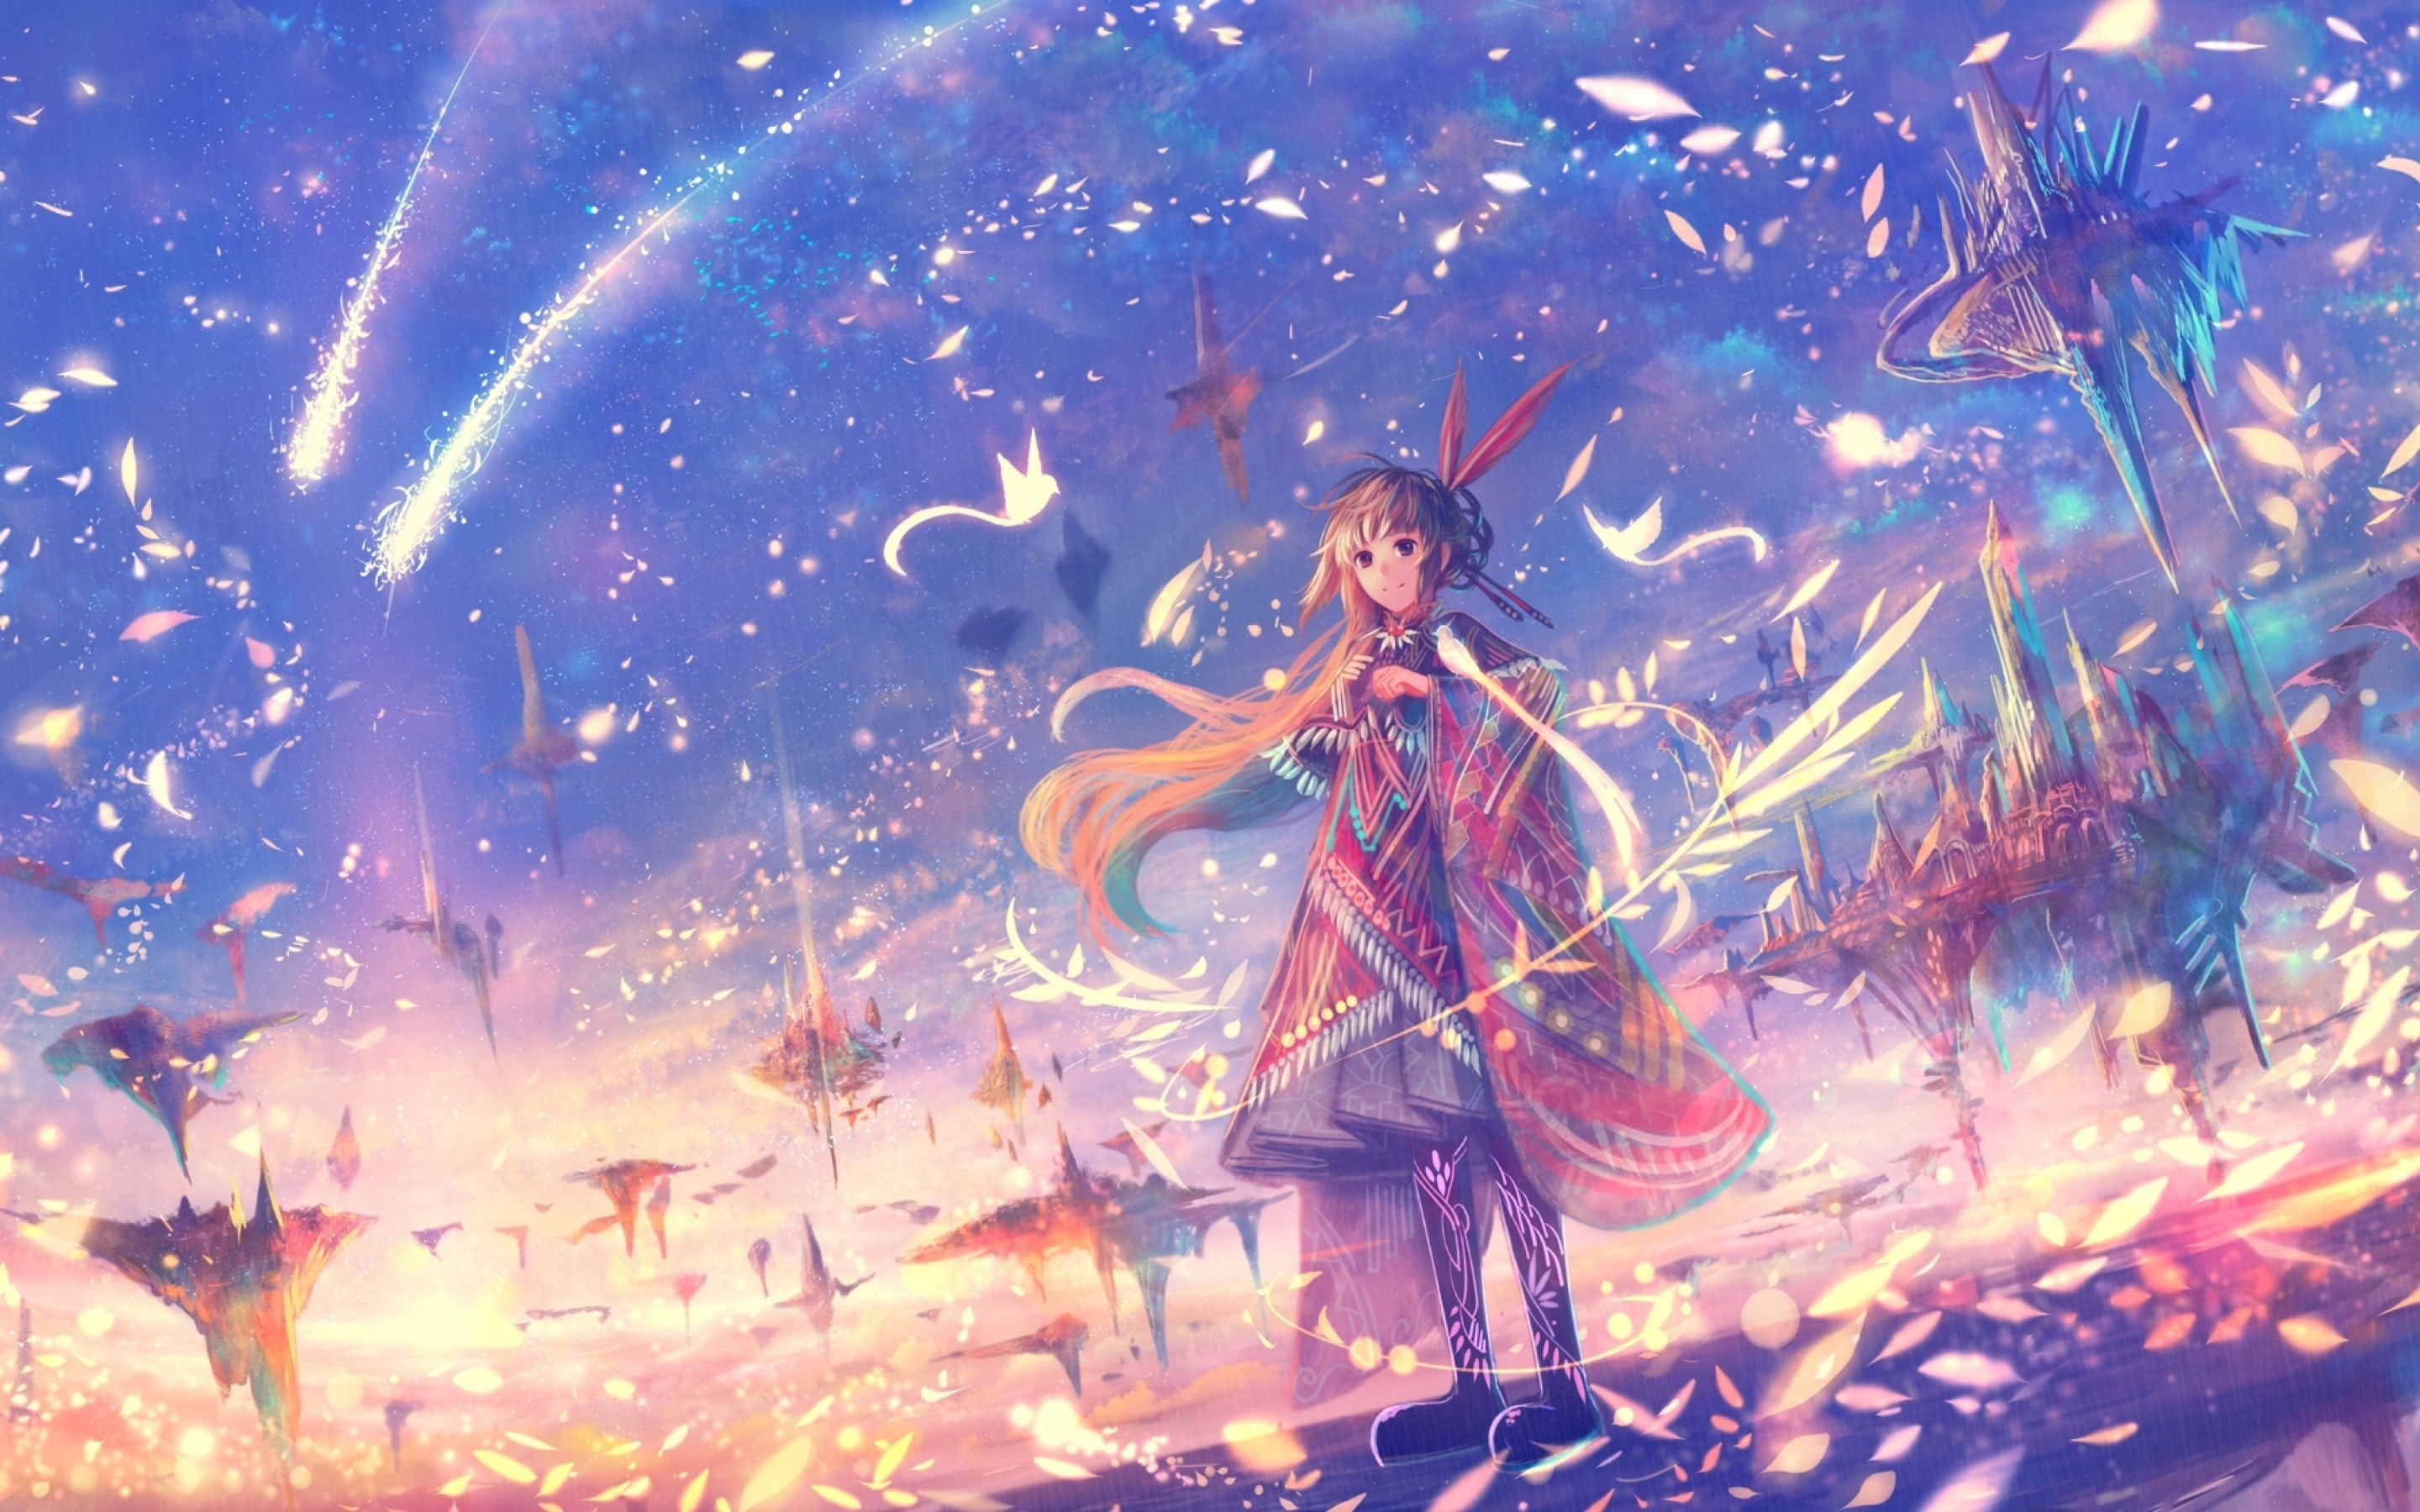 2880x1800 Wallpaper Anime Girl Fantasy World Petals Floating Island - Image #2478 -